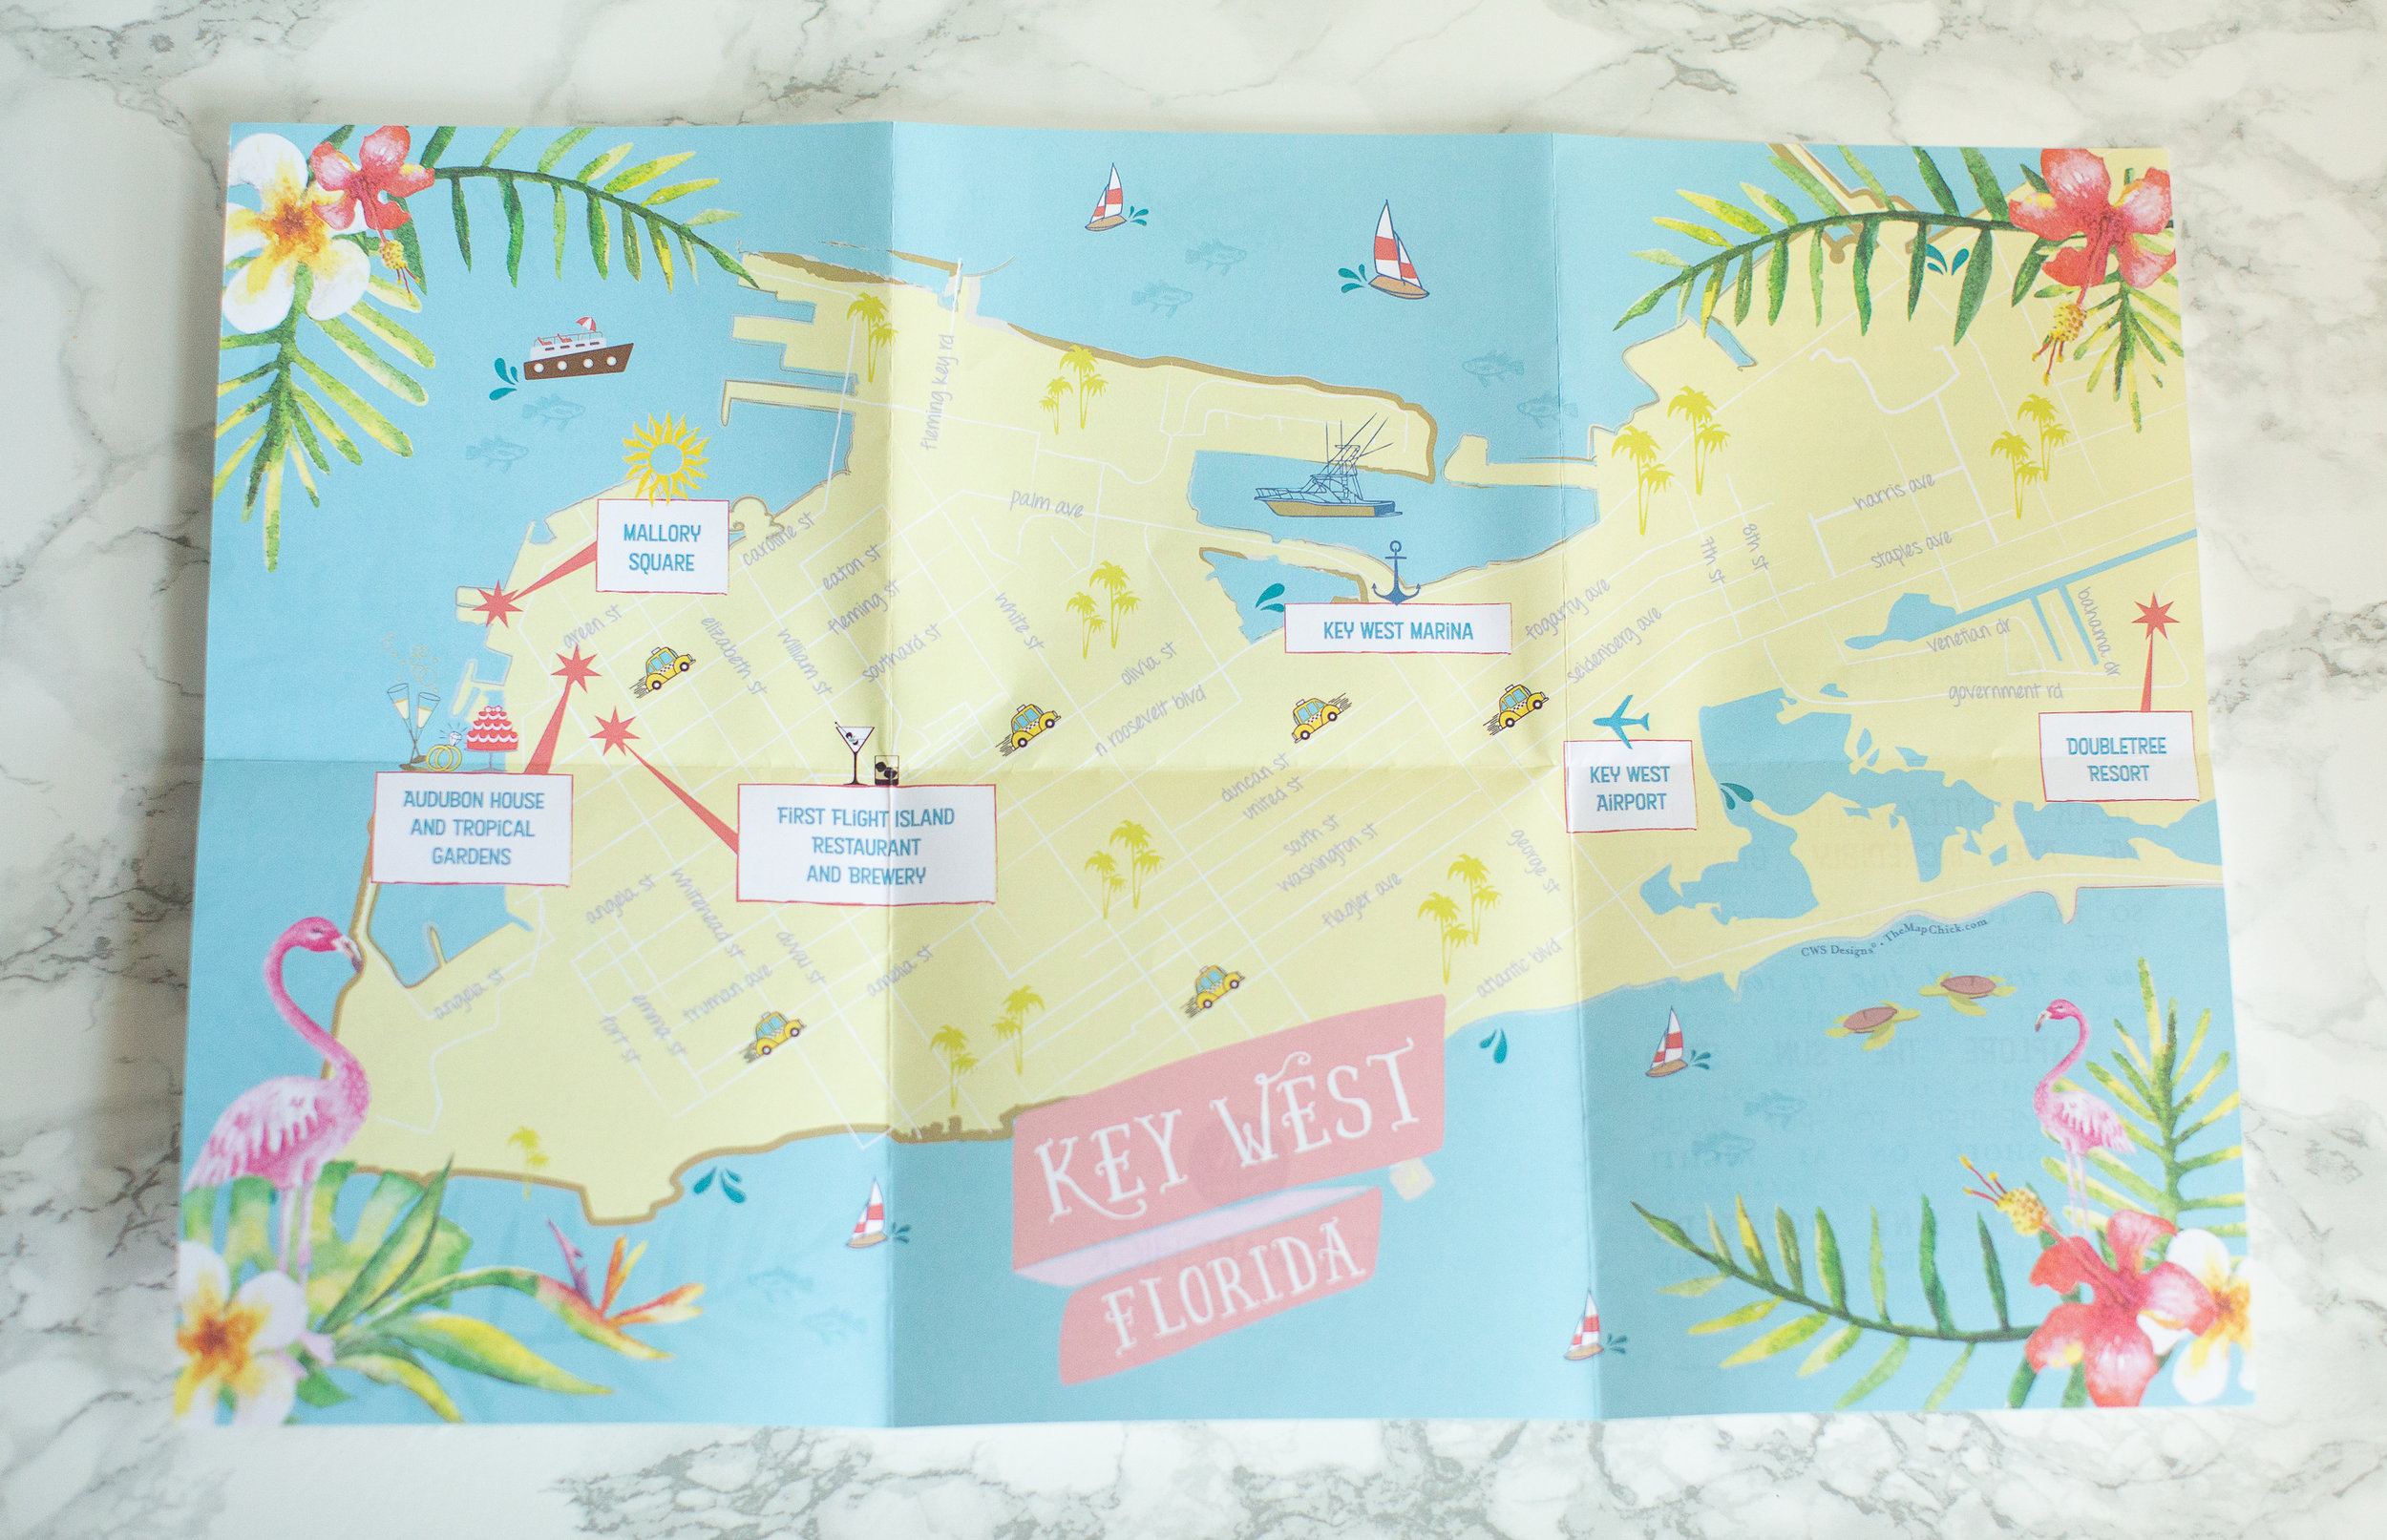 CW Designs | Custom Wedding Maps | Invitations | Save the ... on make an map, make a letter, make an invitation, make an application, make an invoice,